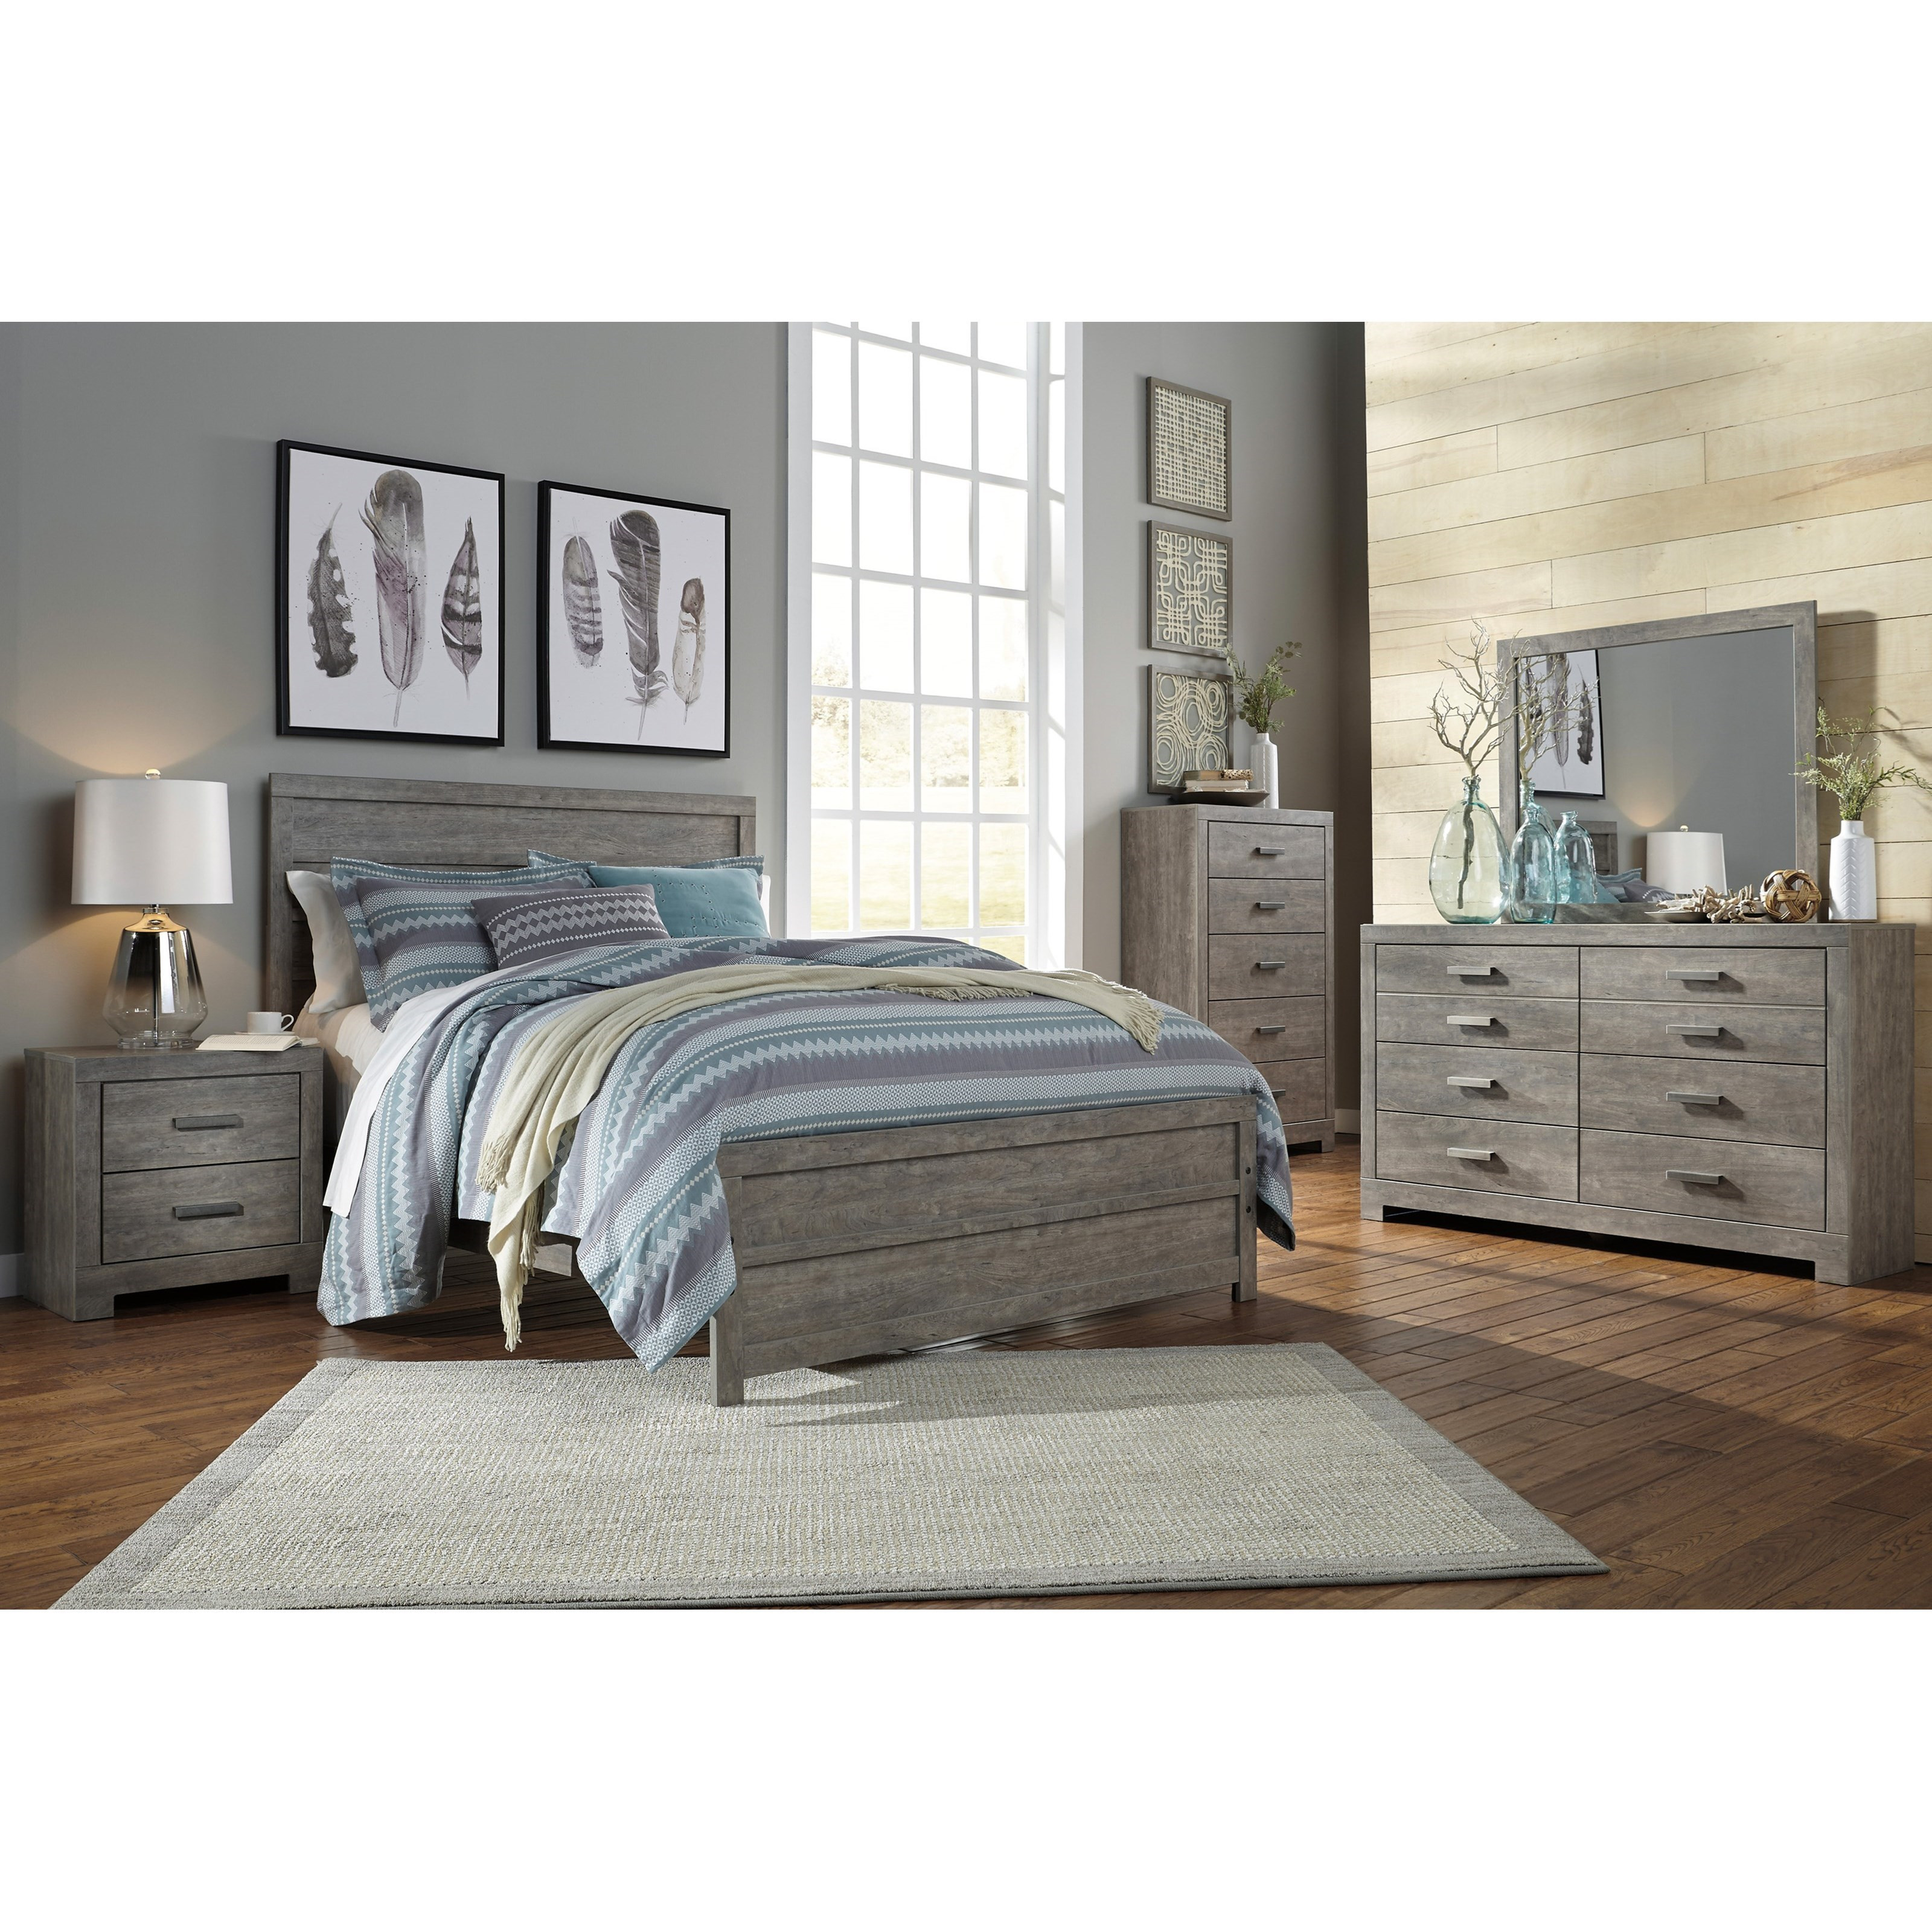 Best ideas about Ashley Bedroom Sets . Save or Pin Signature Design by Ashley Culverbach Queen Bedroom Group Now.